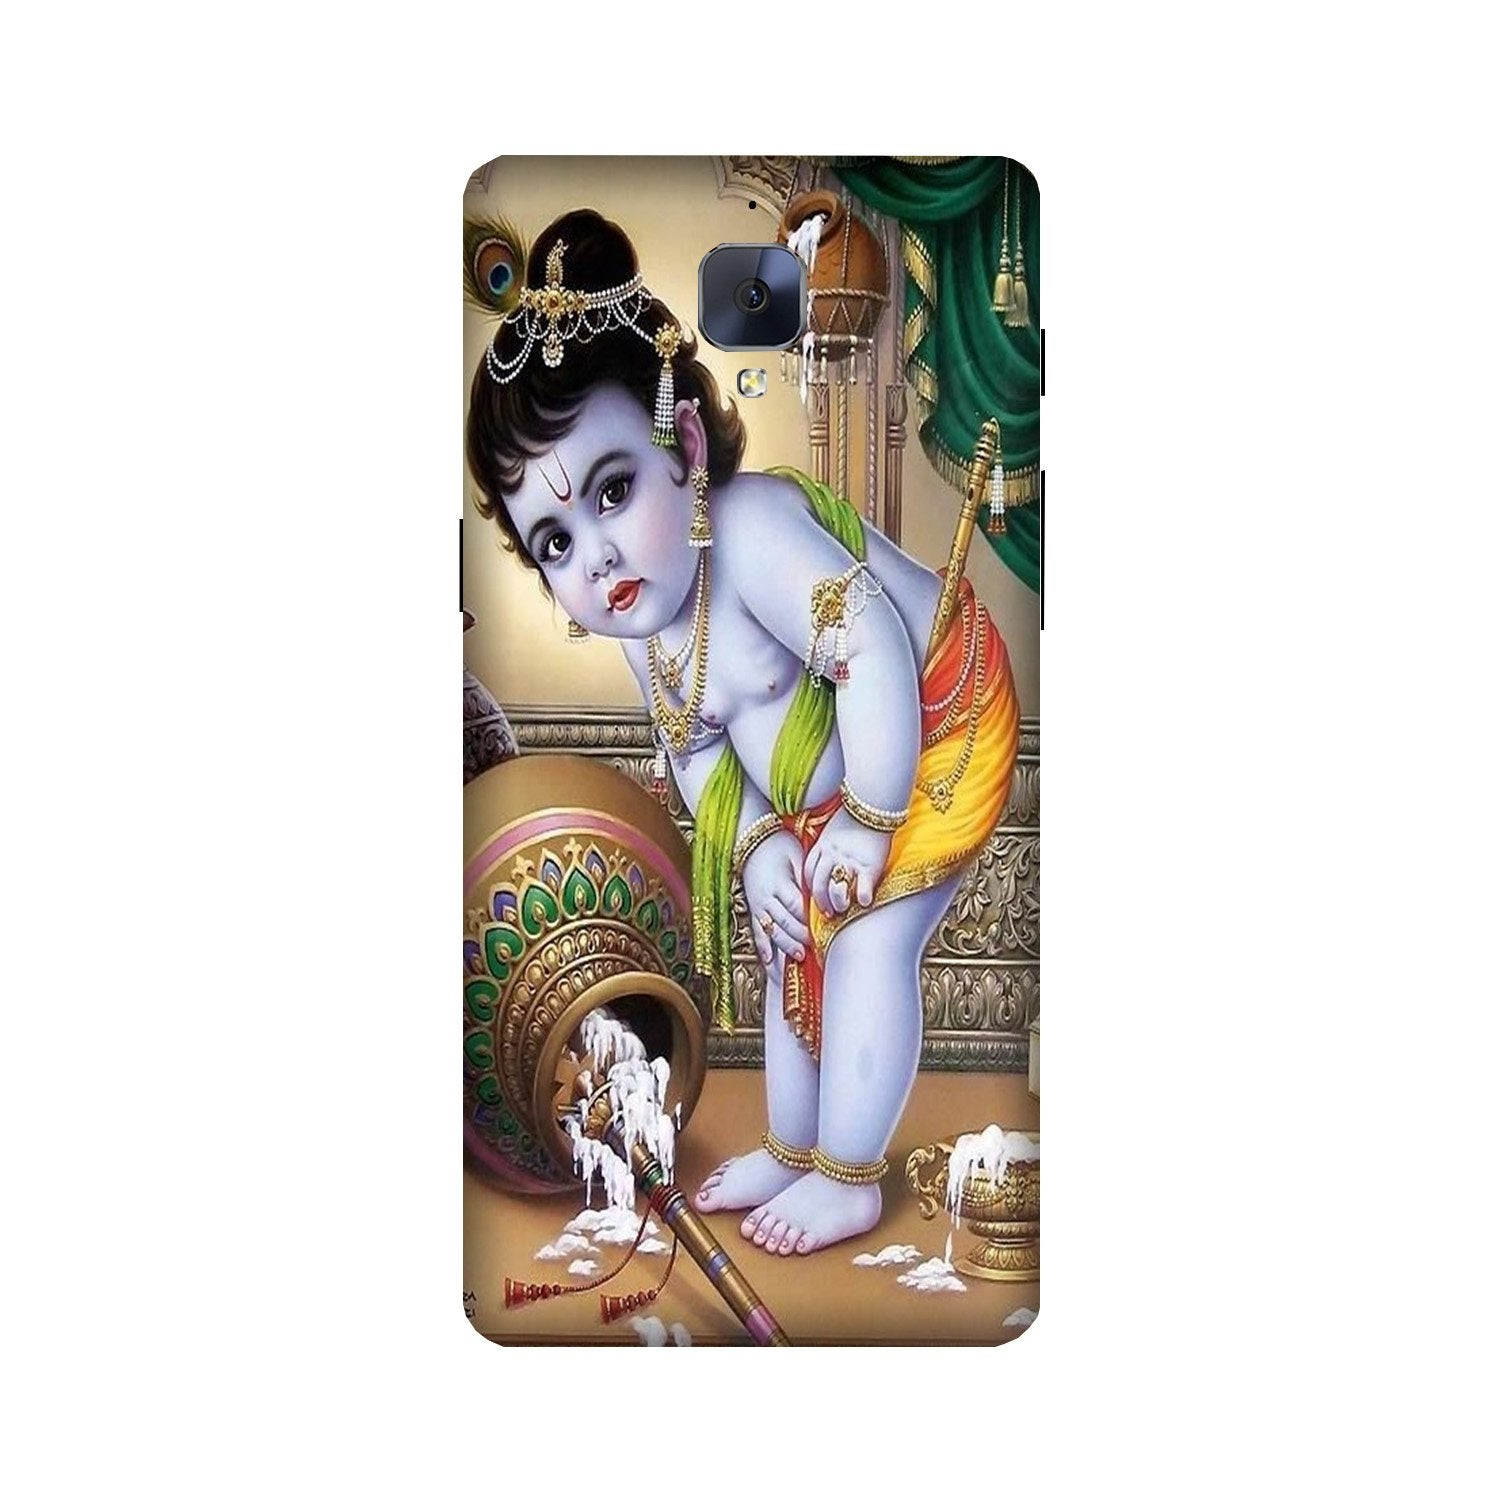 Bal Gopal2 Case for OnePlus 3/ 3T